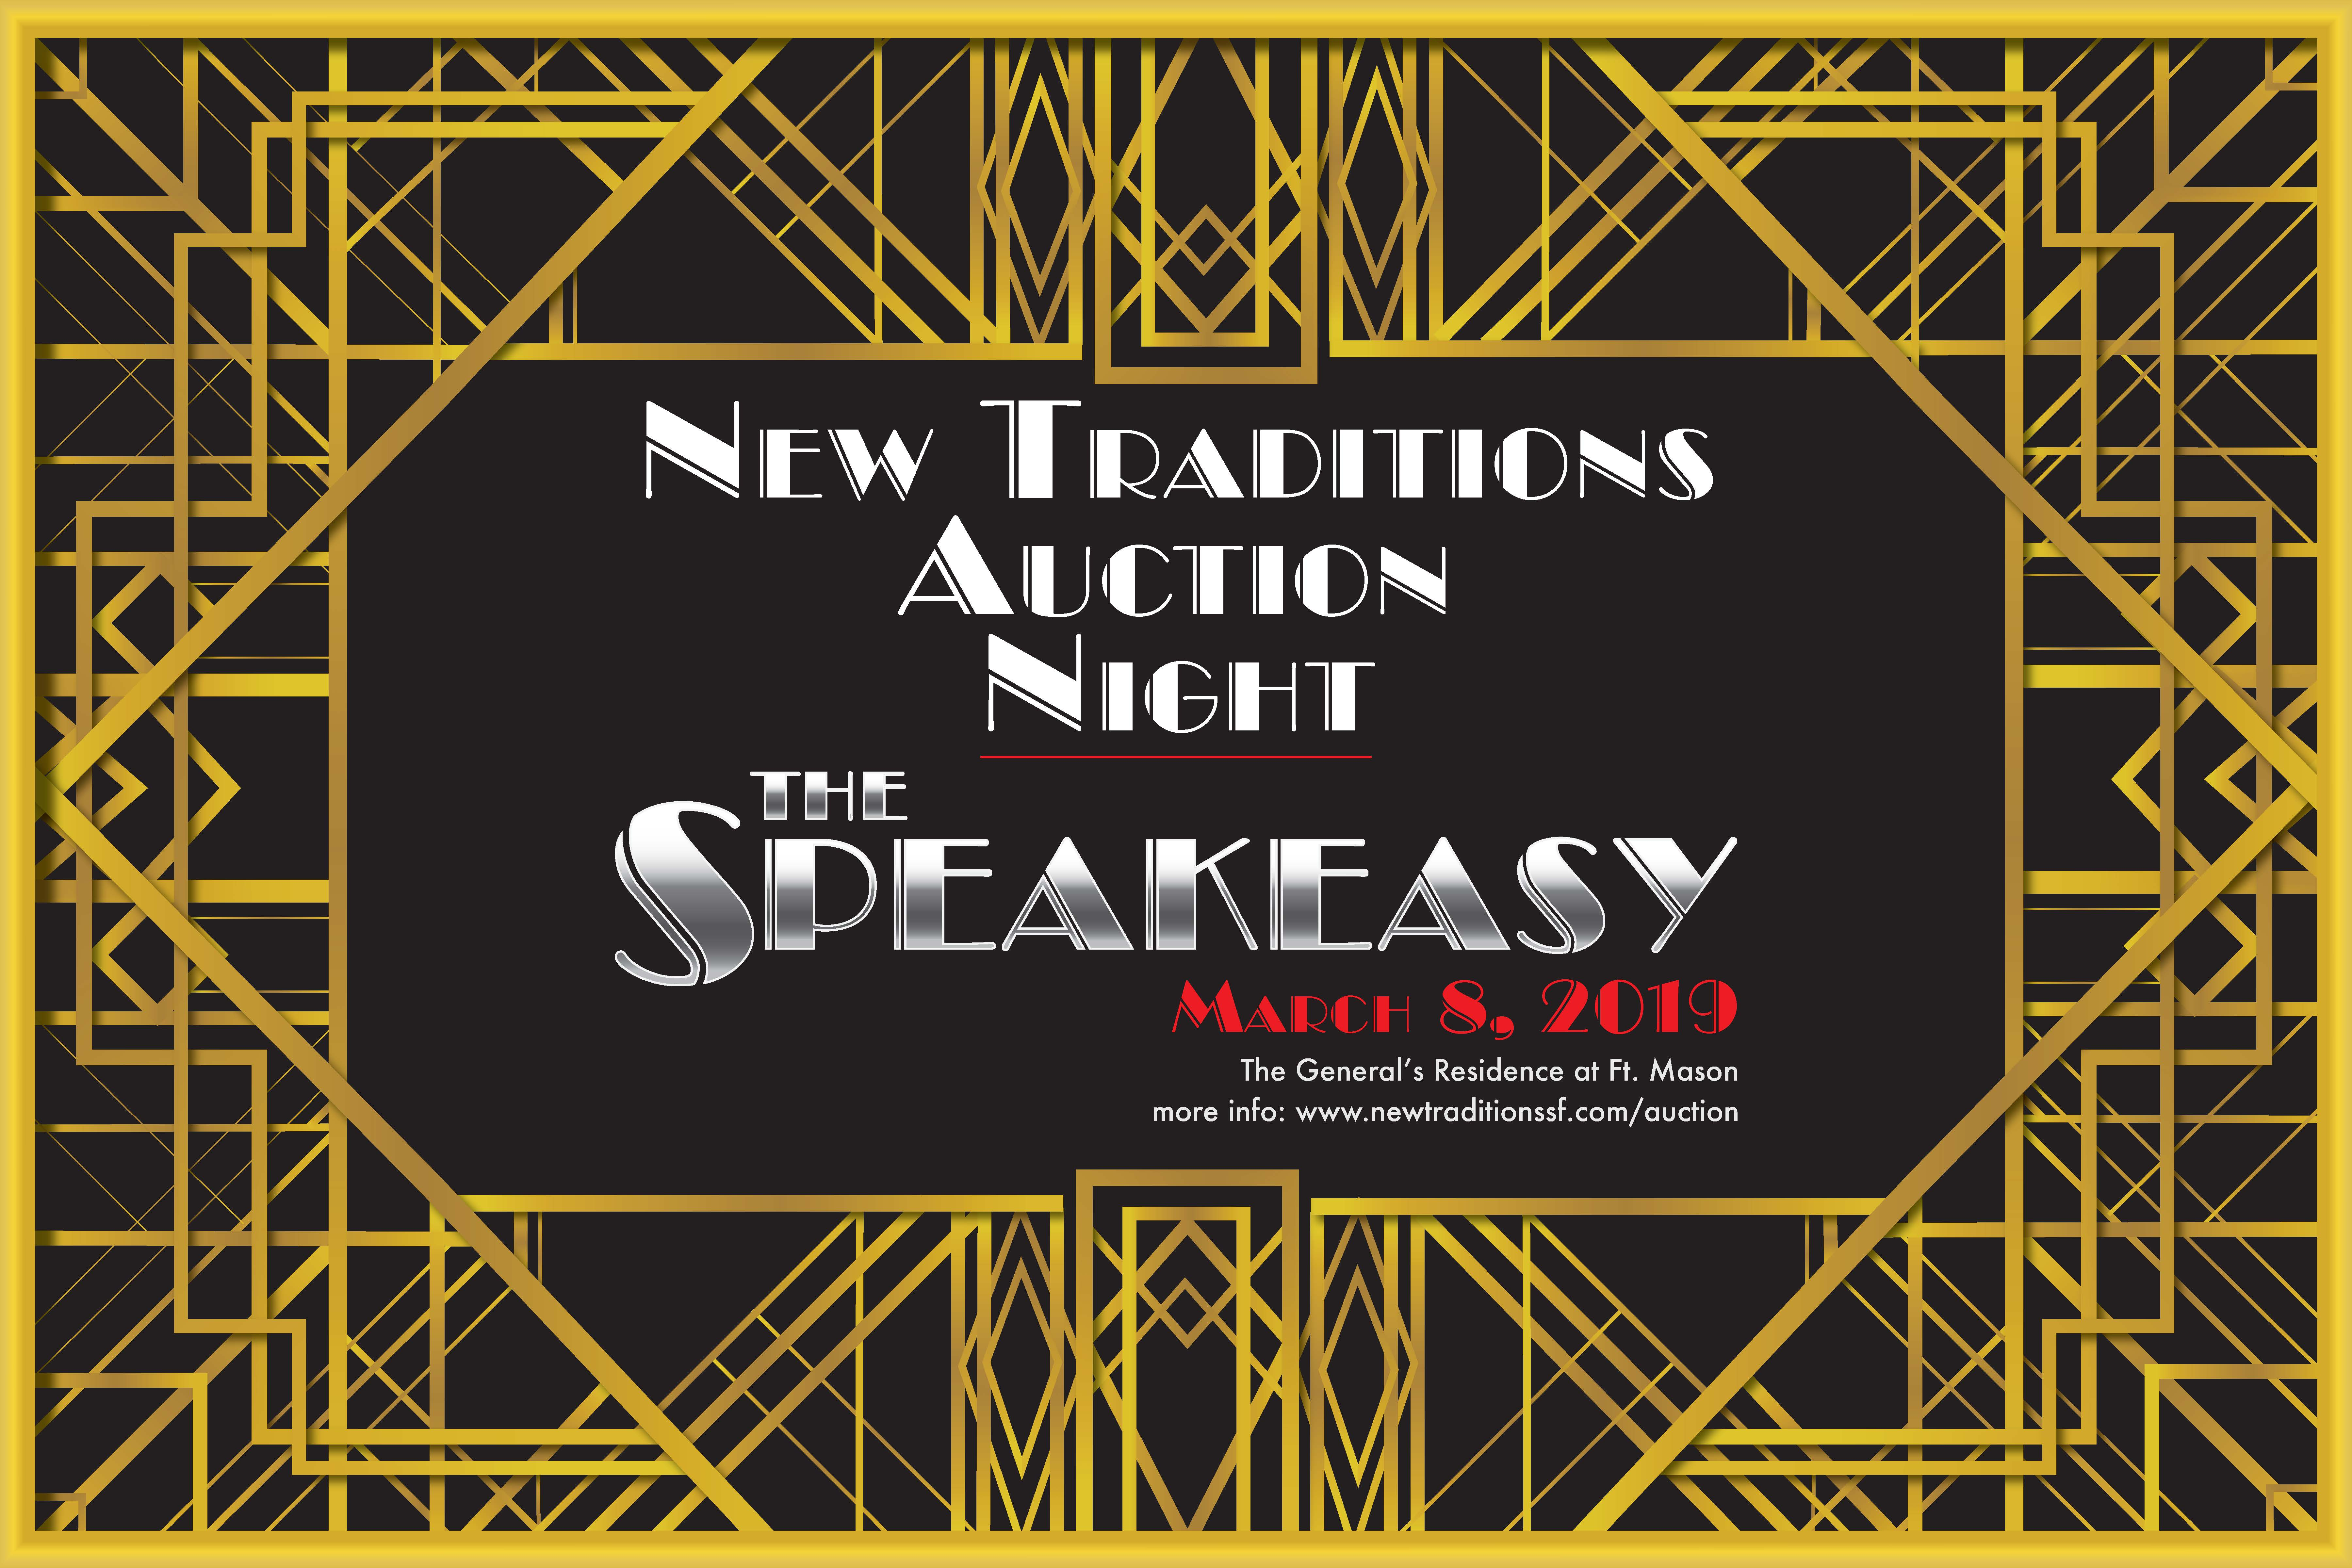 New Traditions Auction Night